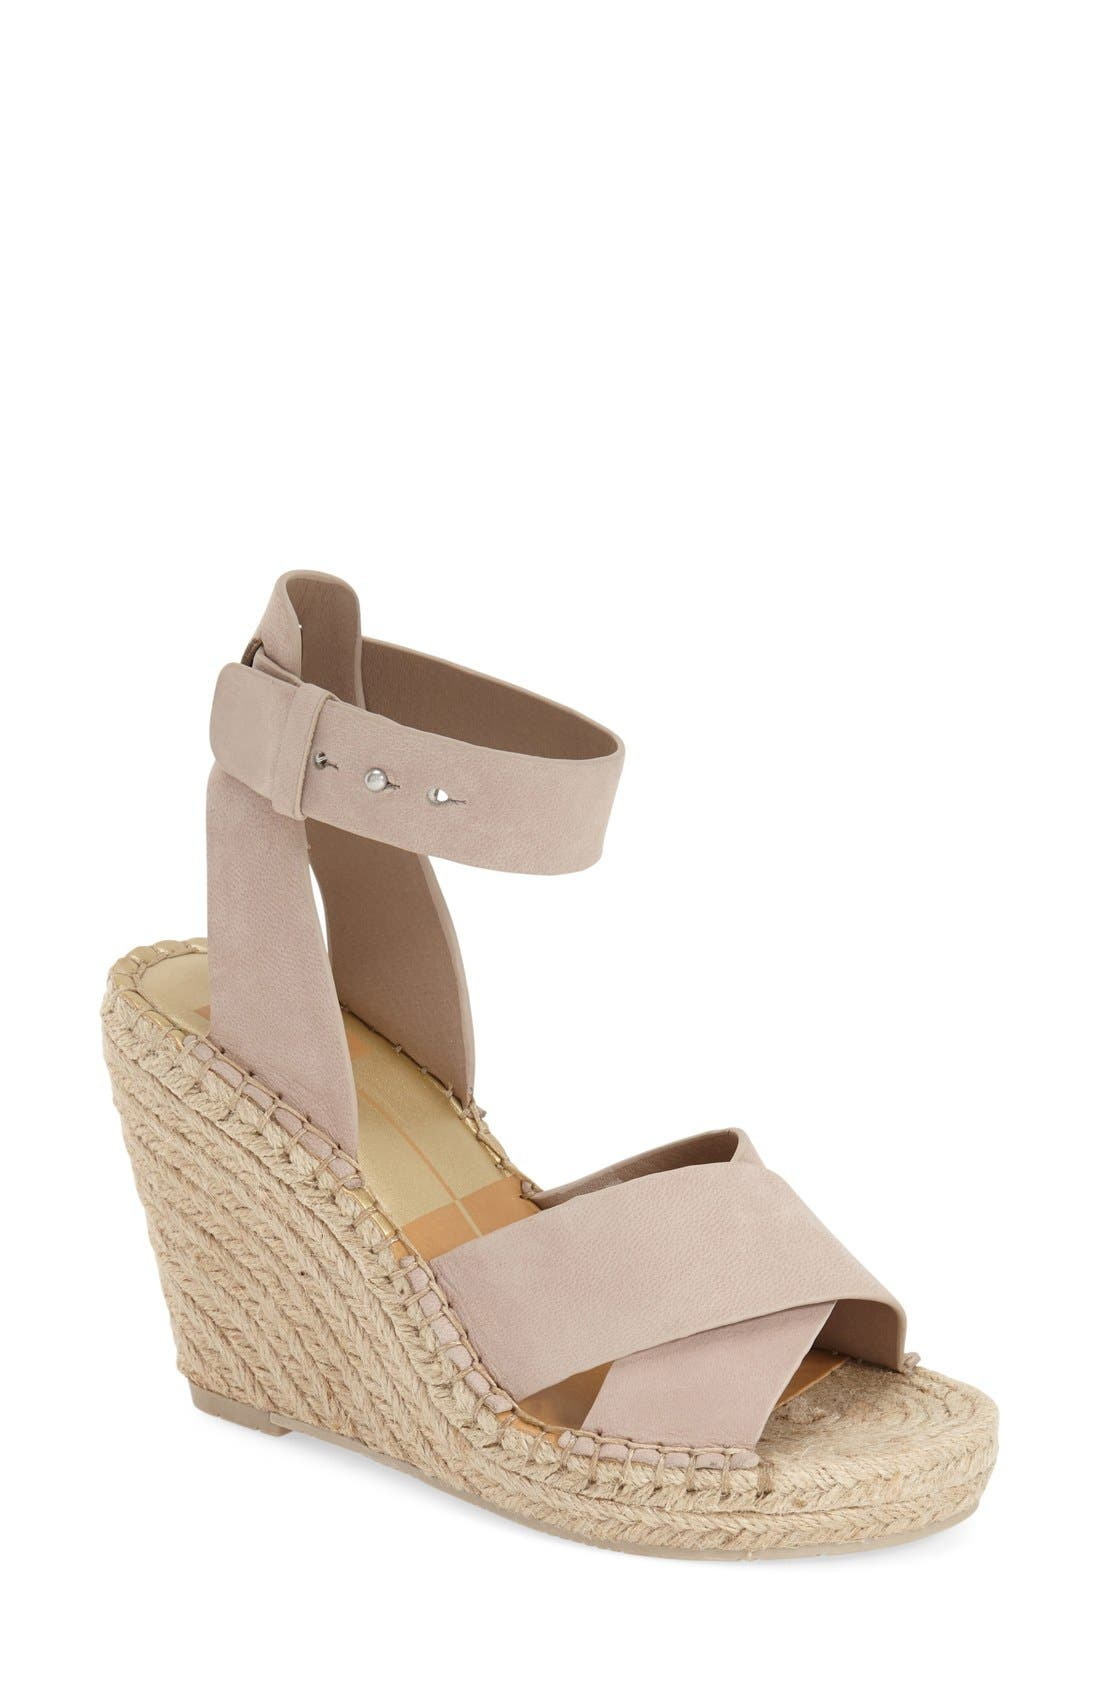 Alternate Image 1 Selected - Dolce Vita 'Nova' Espadrille Wedge Sandal (Women)